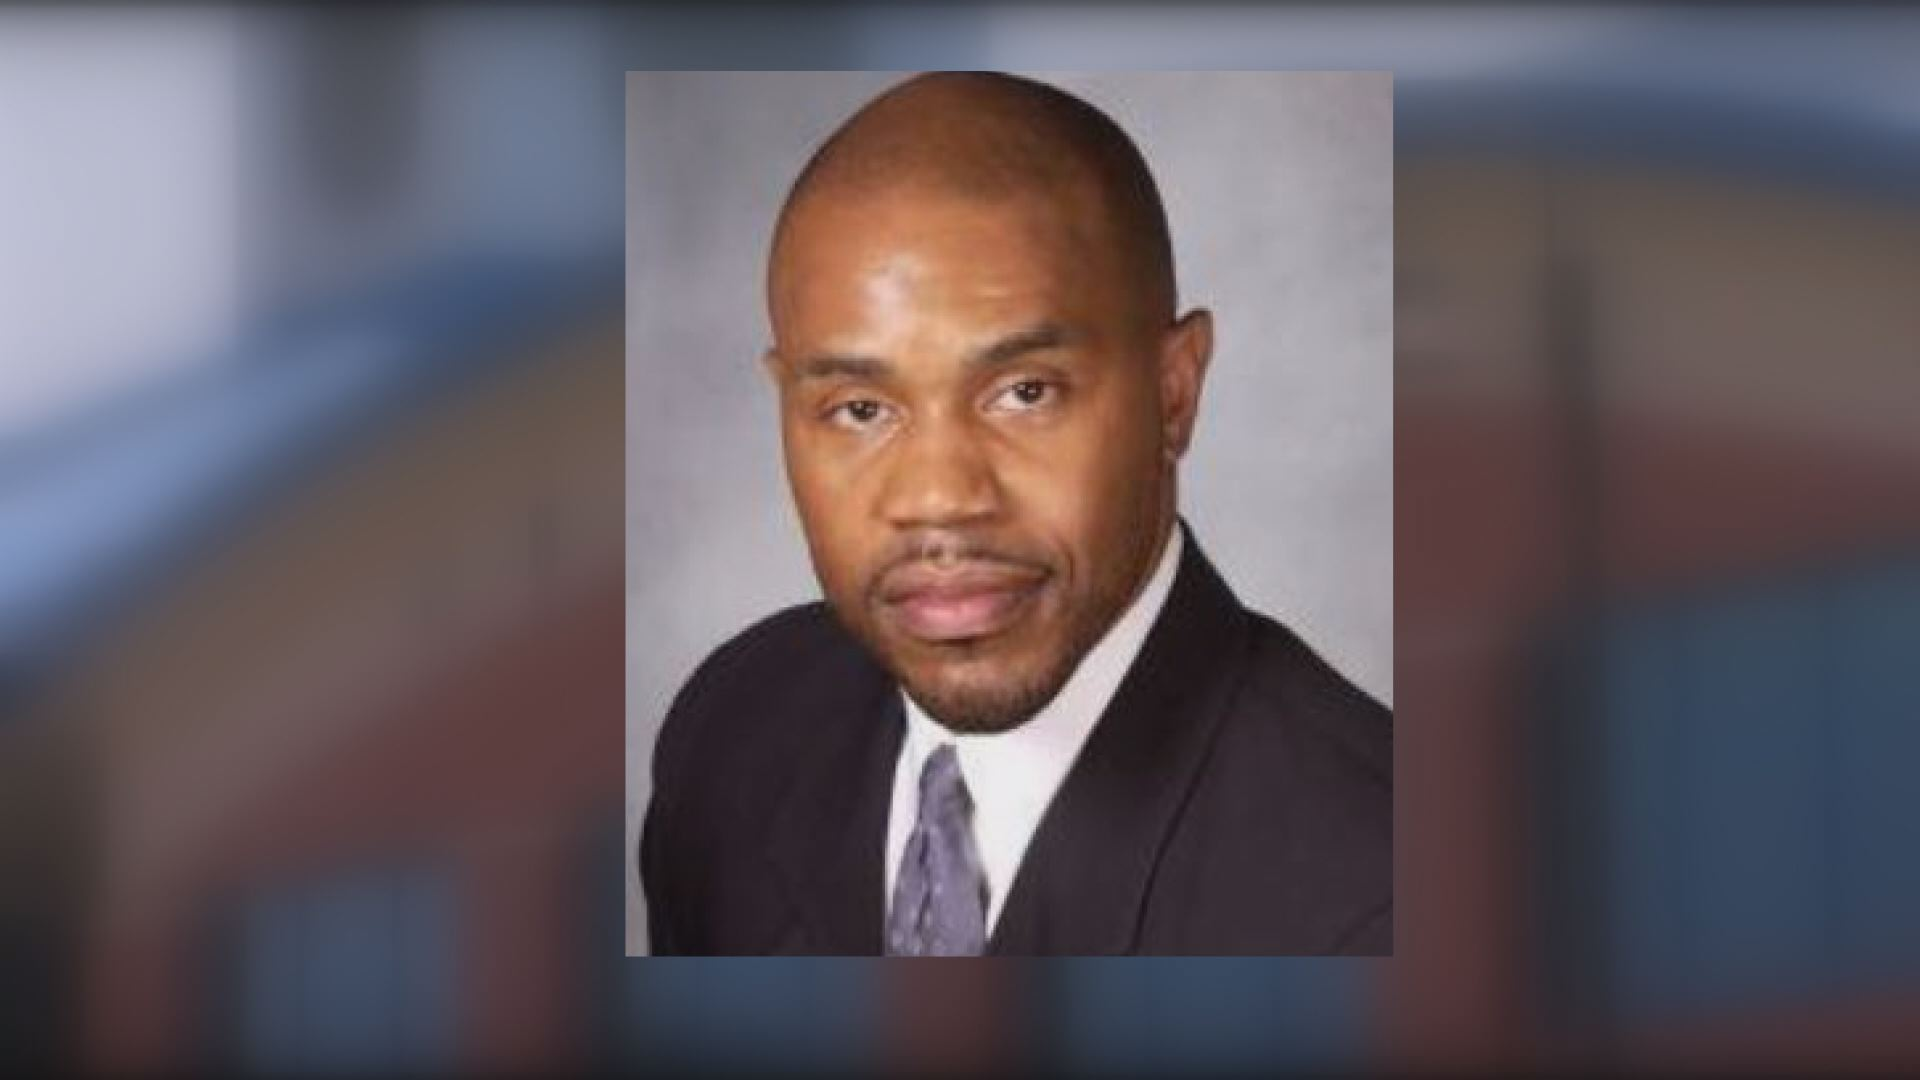 Terrence Carter was selected as the new superintendent of New London Public Schools, but the state Department of Education has asked him to withdraw amid controversy surrounding his qualifications.